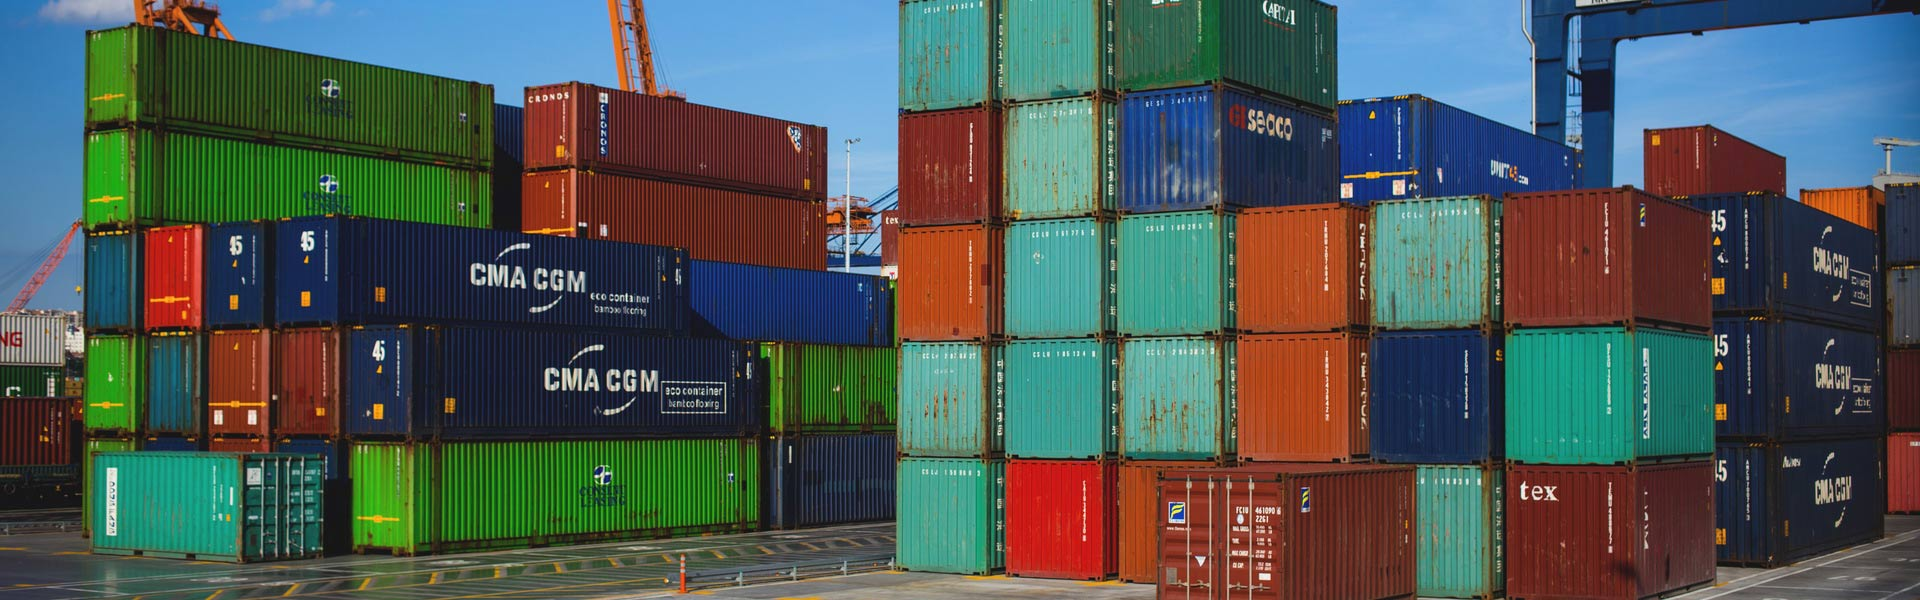 Containers Intermodal